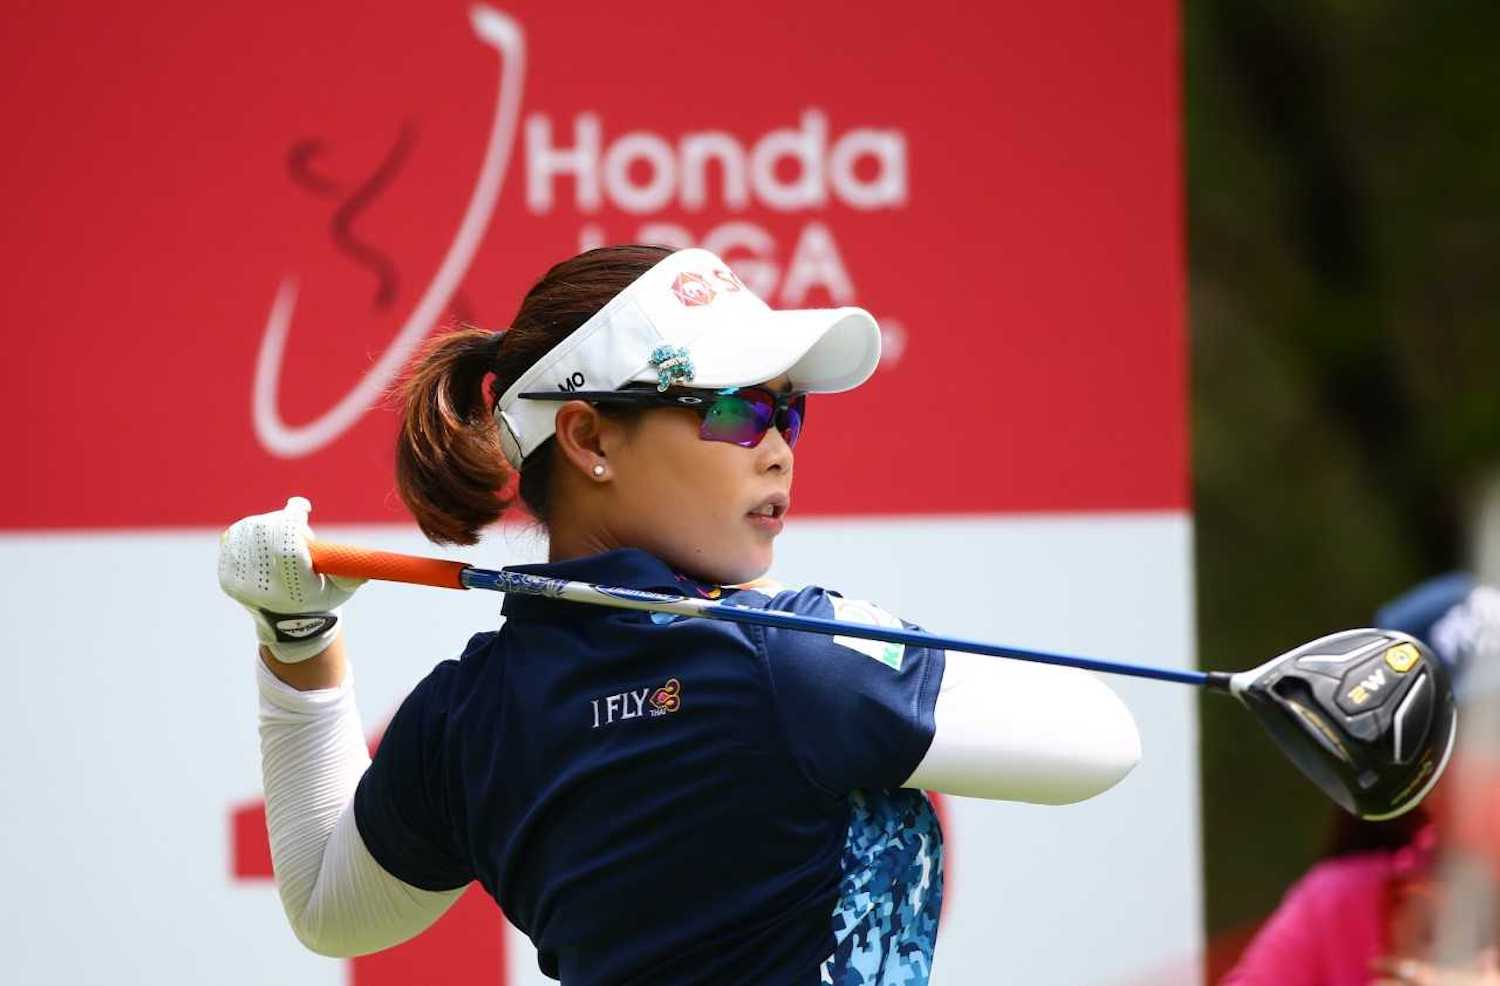 Moriya Jutanugarn of Thailand tees off during the second round off the Honda LPGA Thailand tournament in Pattaya in February last year. This year's event has been canceled because of concerns about the coronavirus.